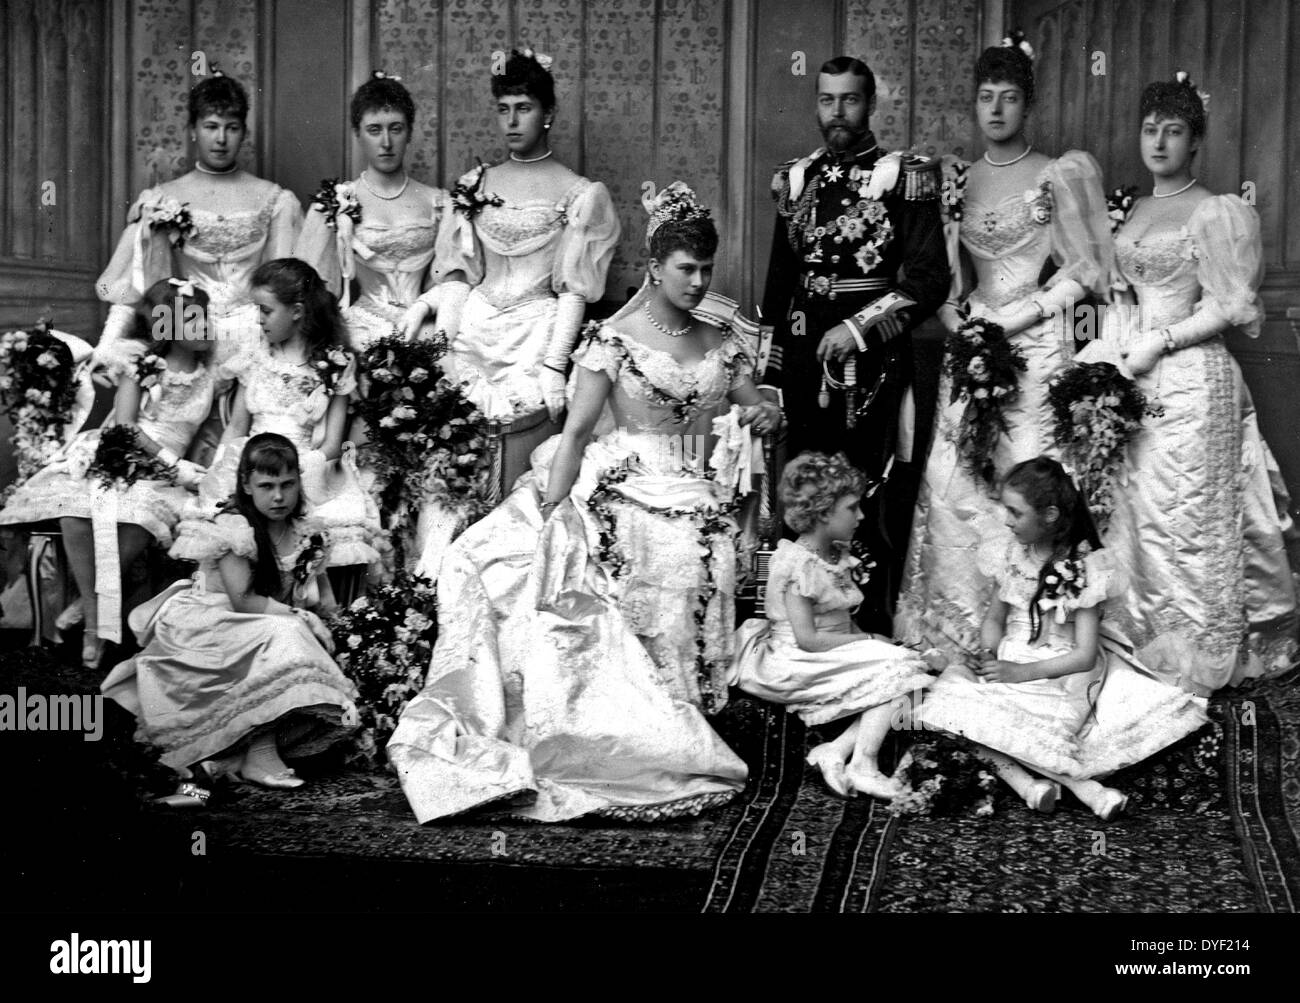 Portrait photograph in Buckingham Palace from the wedding of King George V and Princess Mary of Teck. - Stock Image